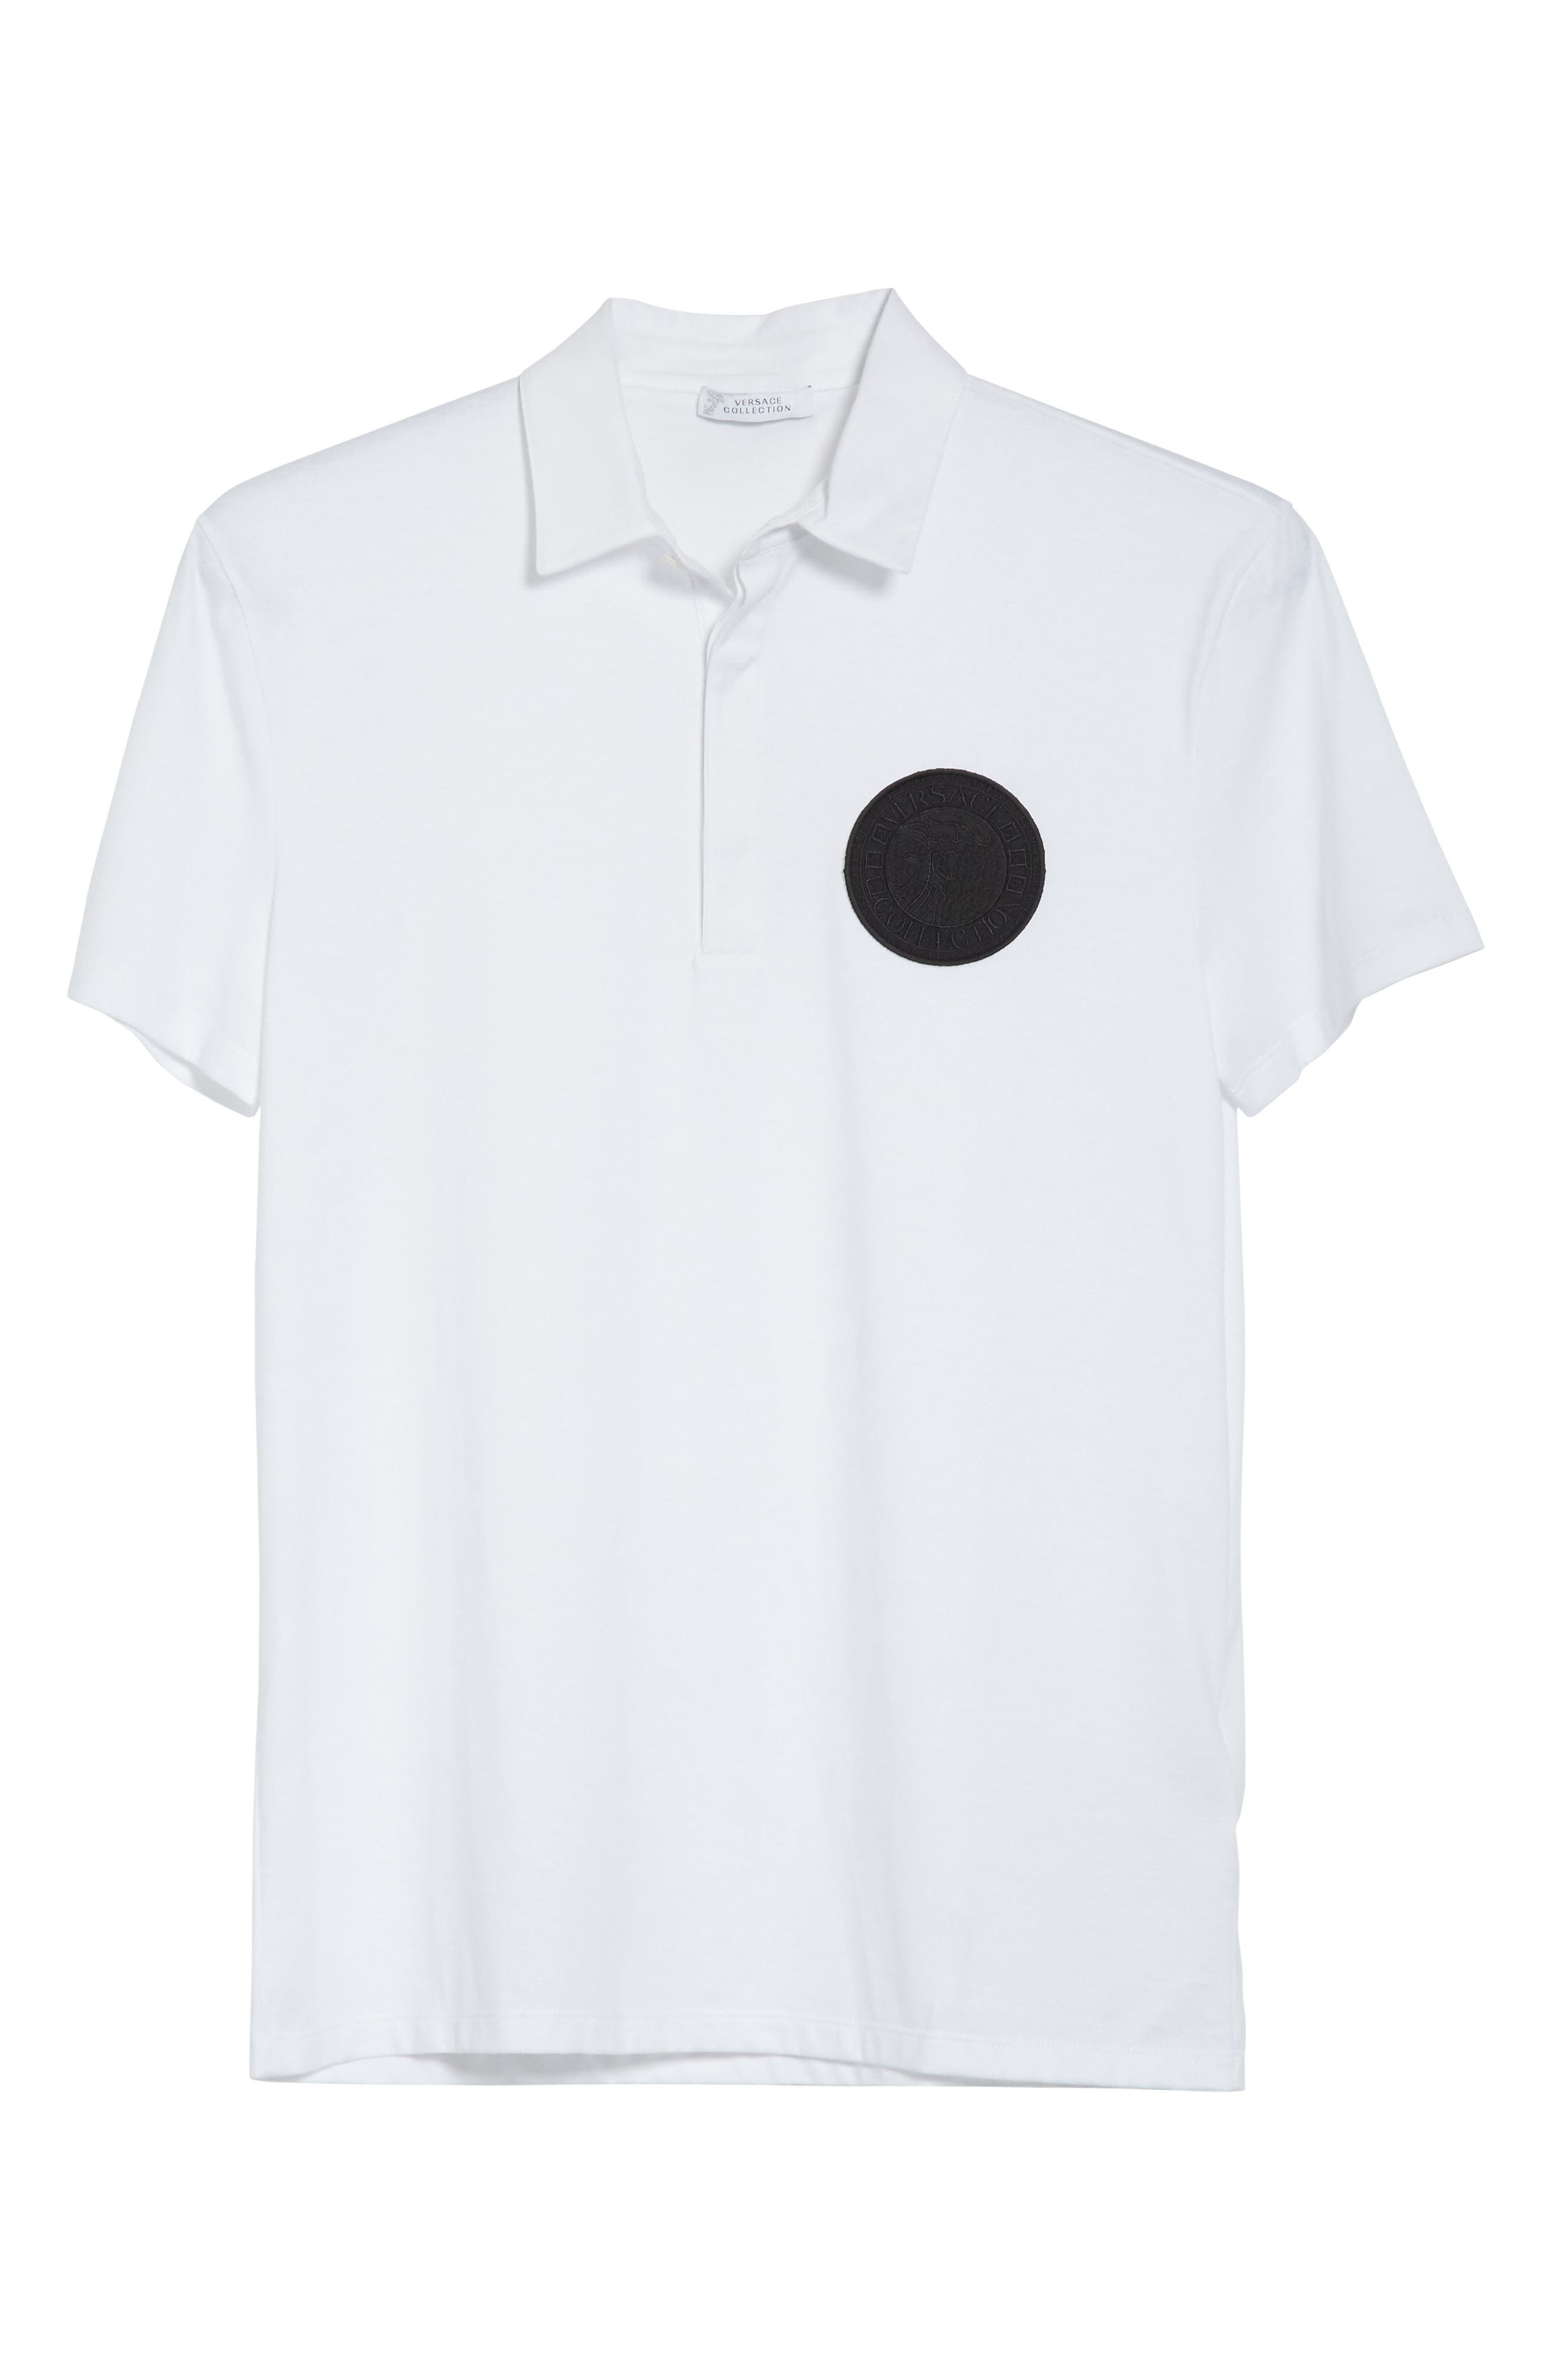 VERSACE COLLECTION,                             Logo Patch Jersey Polo,                             Alternate thumbnail 6, color,                             WHITE